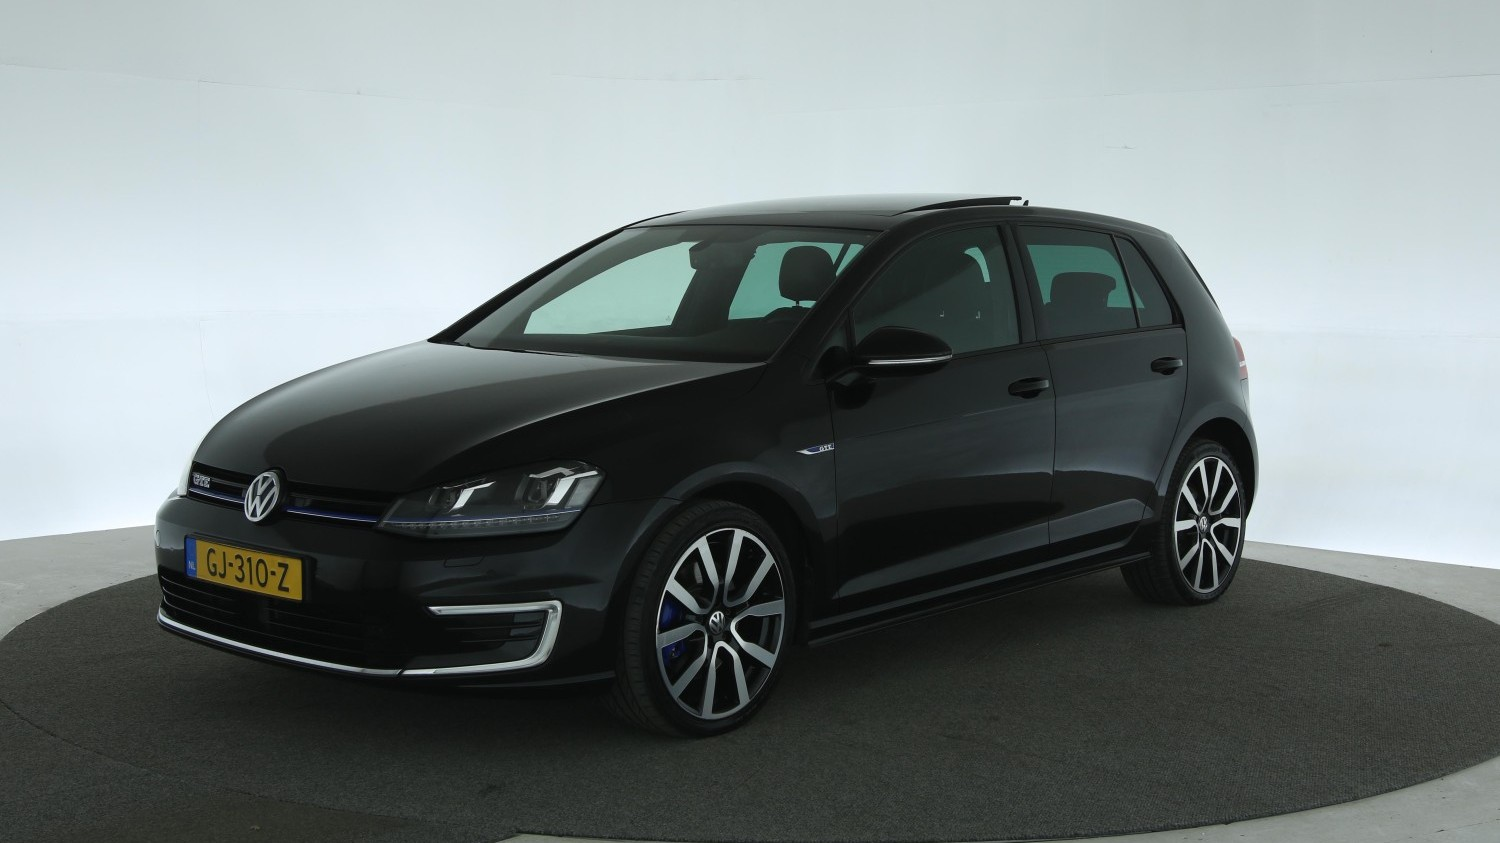 Volkswagen Golf Hatchback 2015 GJ-310-Z 1